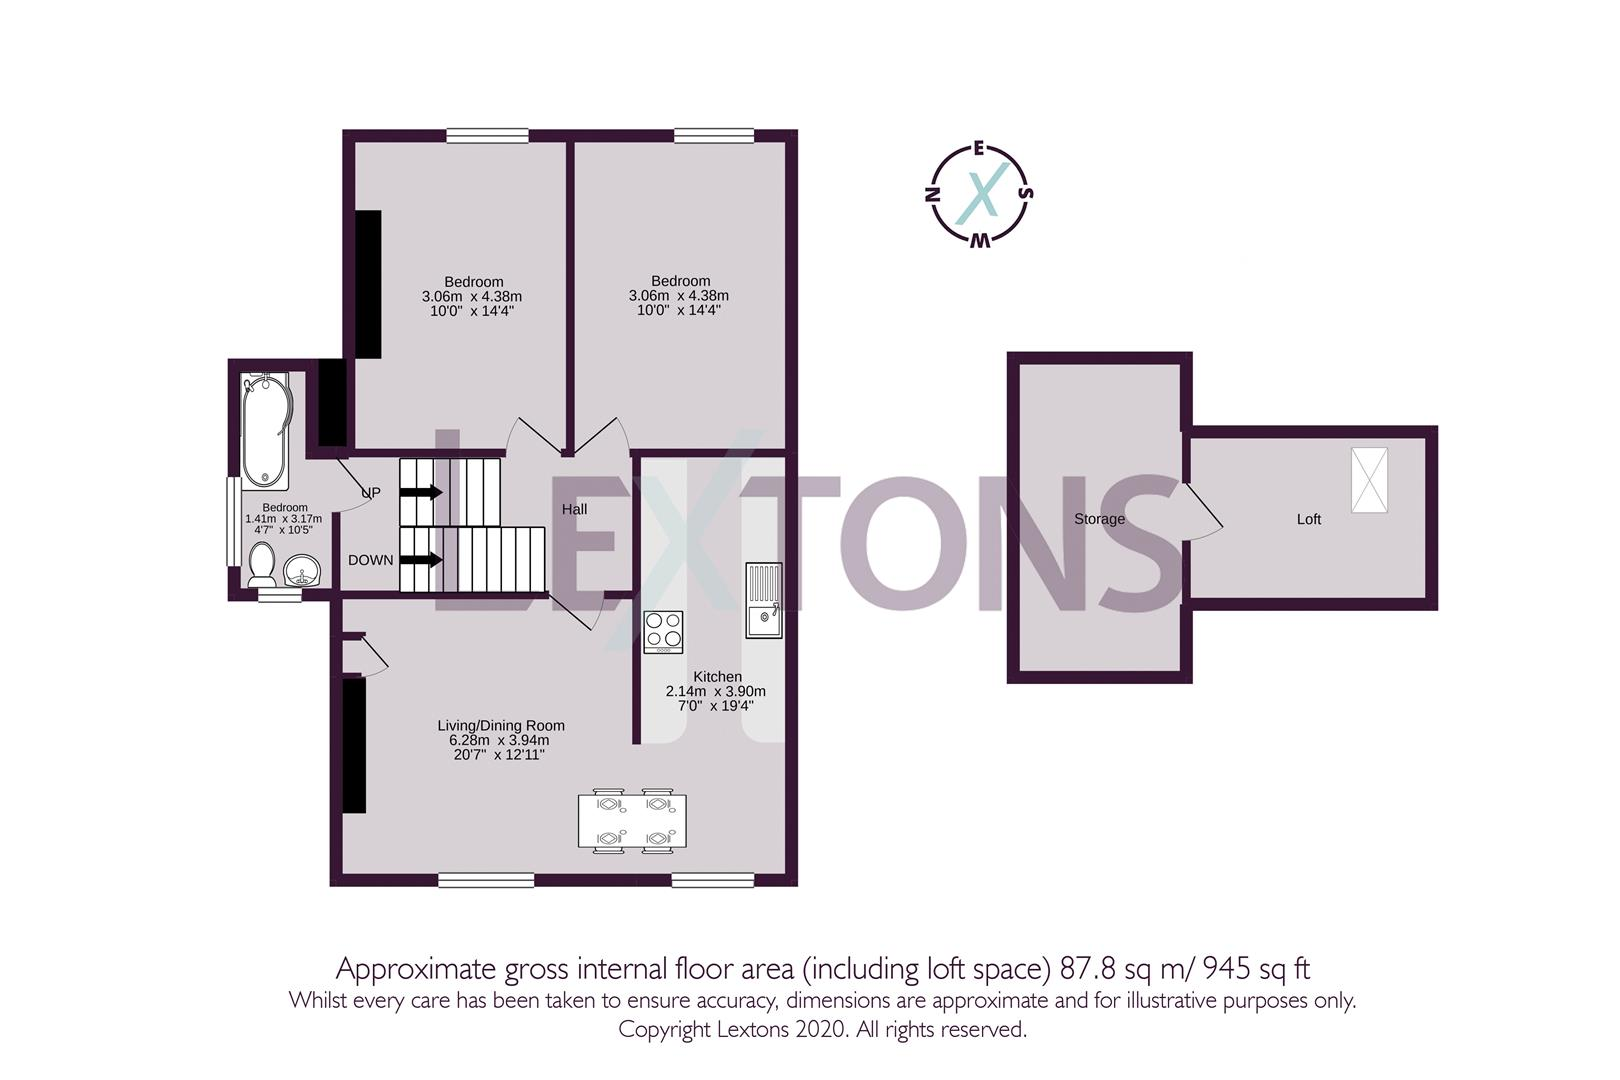 Floorplans For Selborne Road, Hove